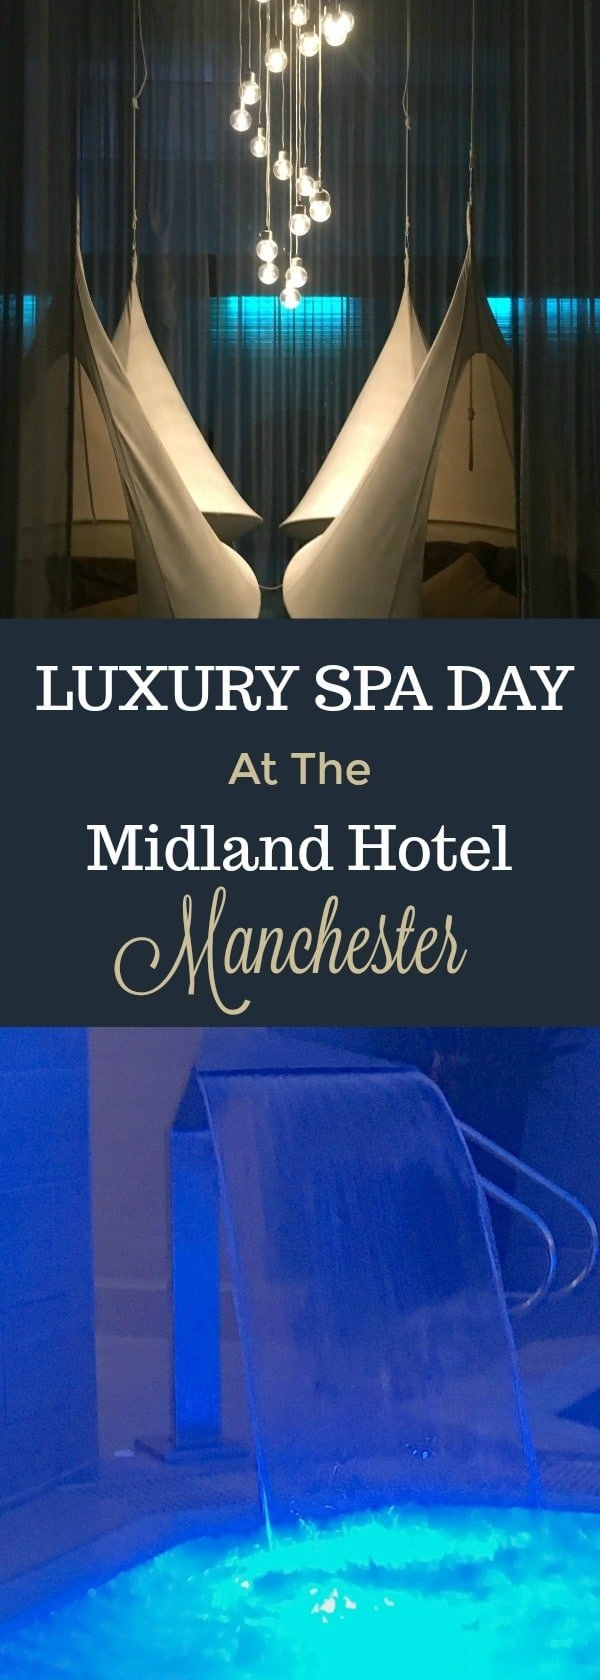 Spa Day and afternoon tea at the Midland Hotel Manchester the perfect chill day